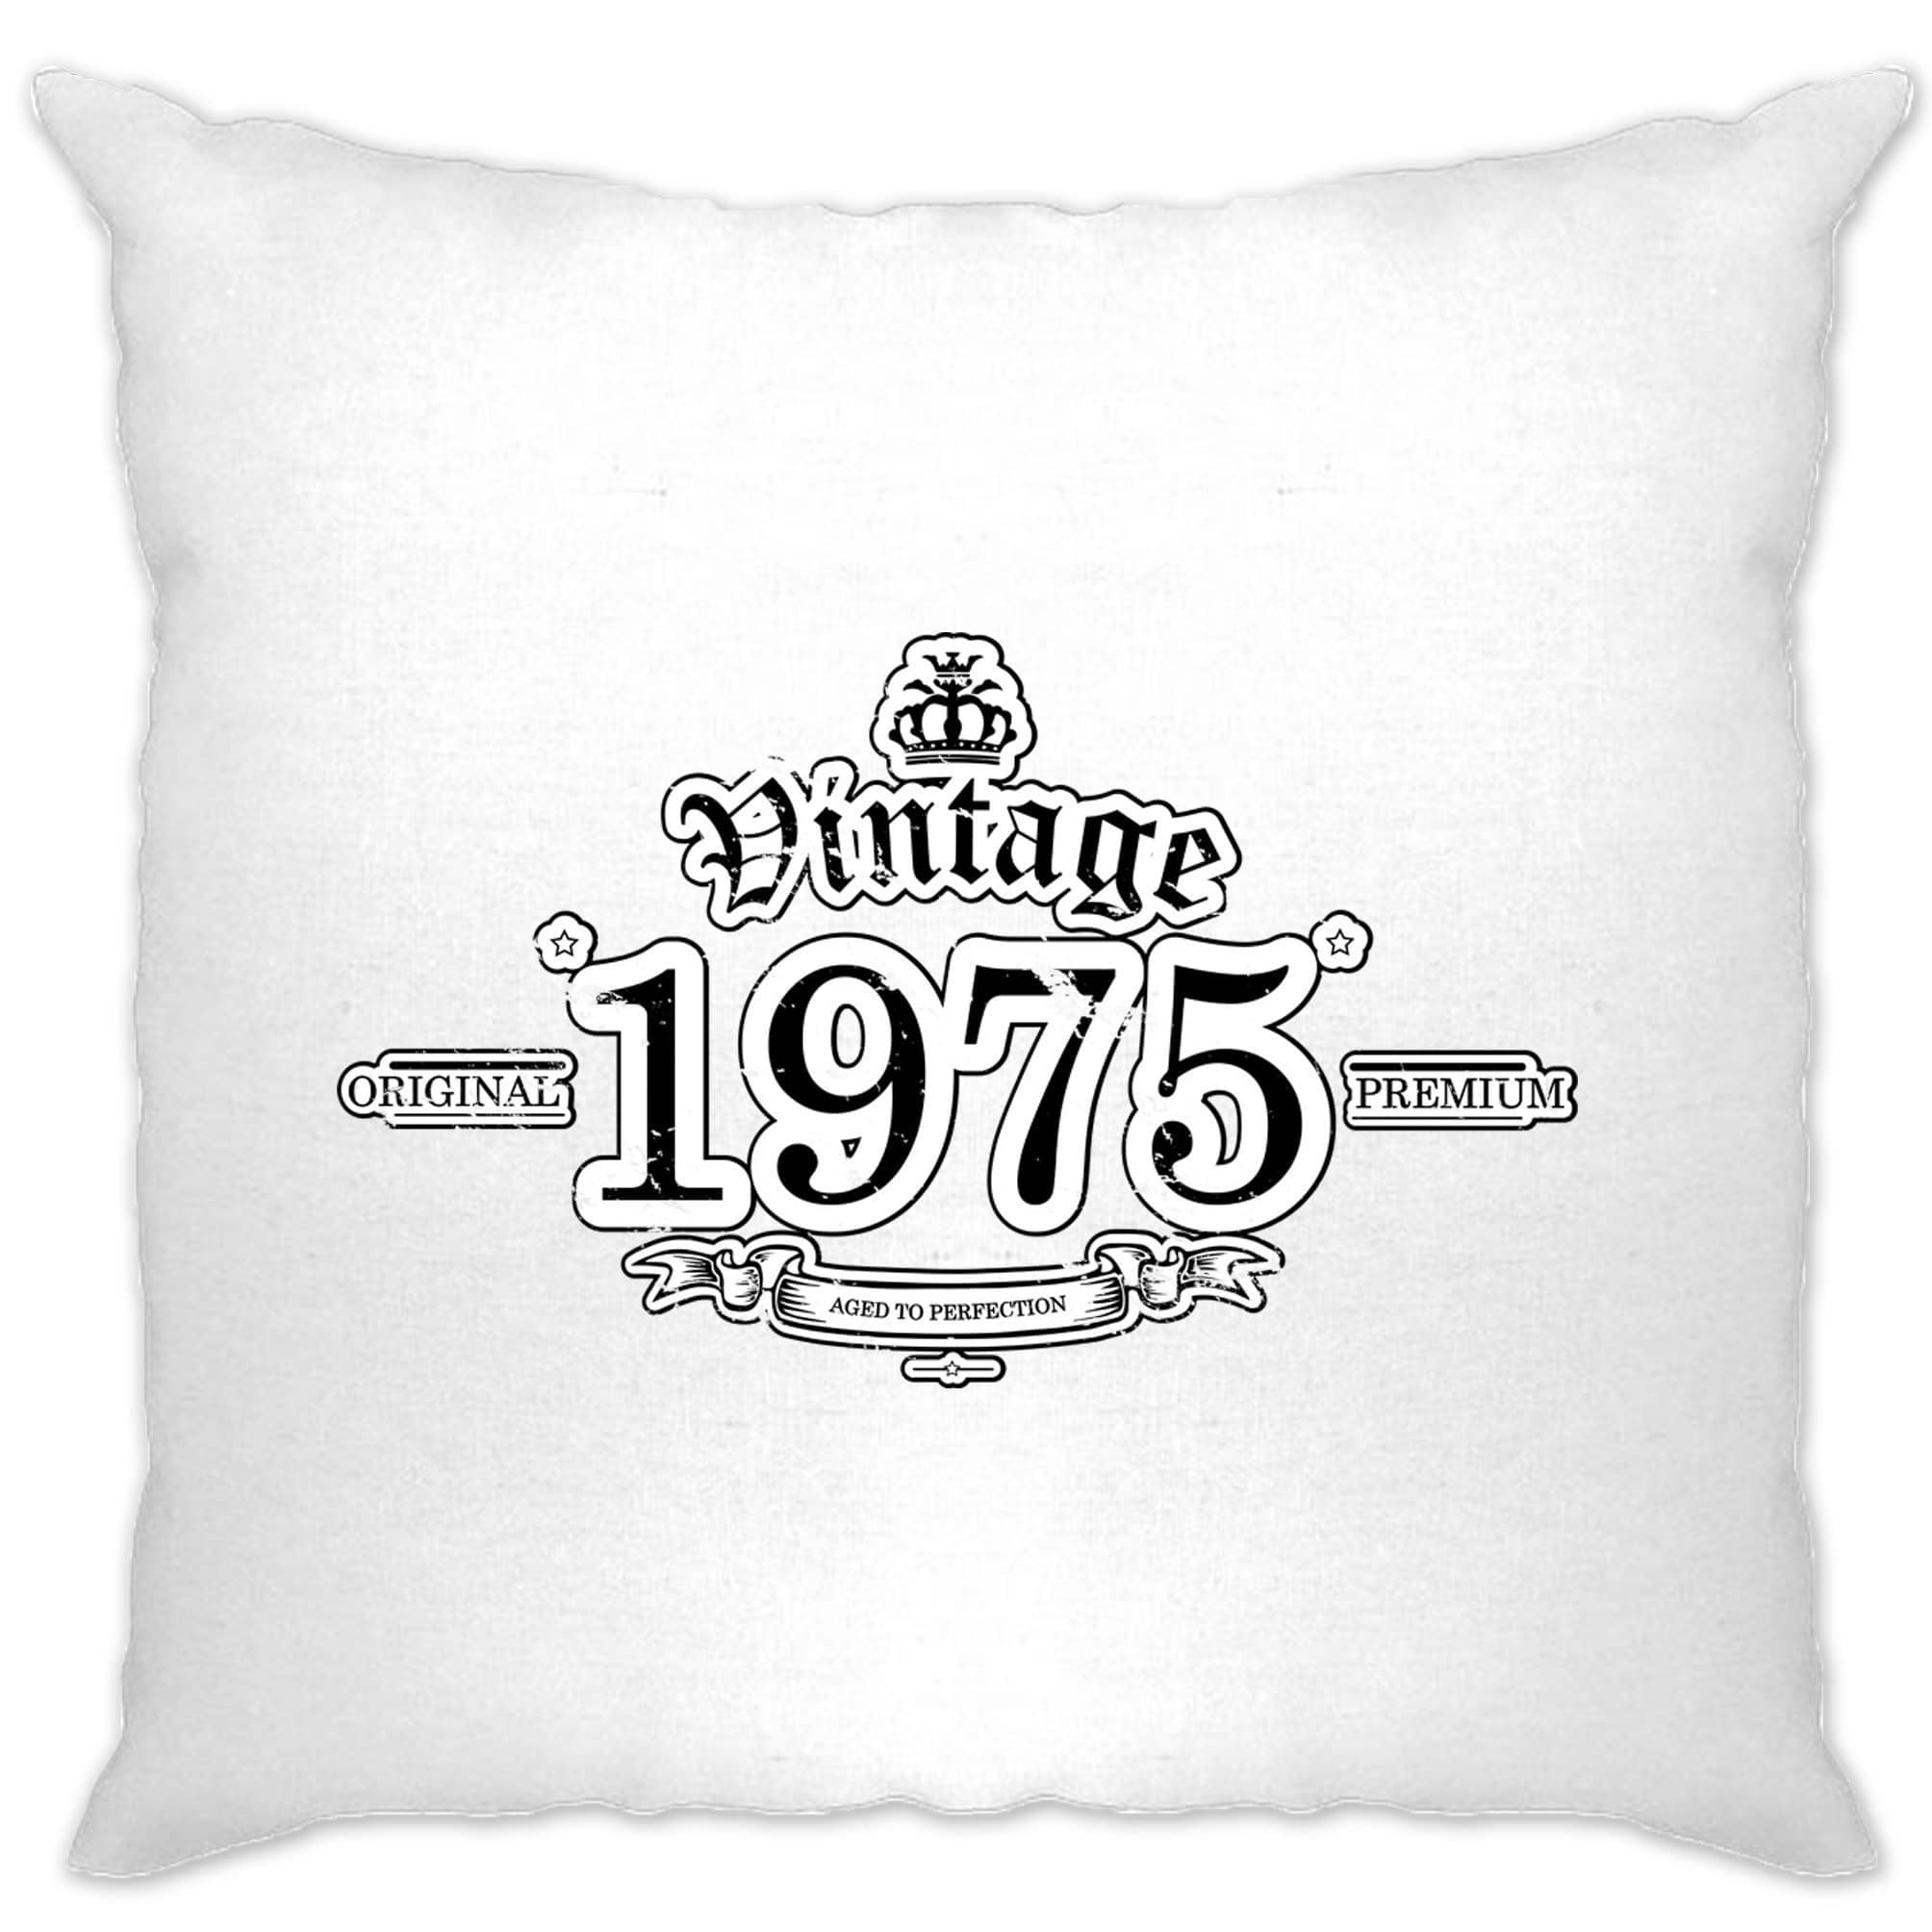 43rd Birthday Cushion Cover Vintage 1975 Aged To Perfection